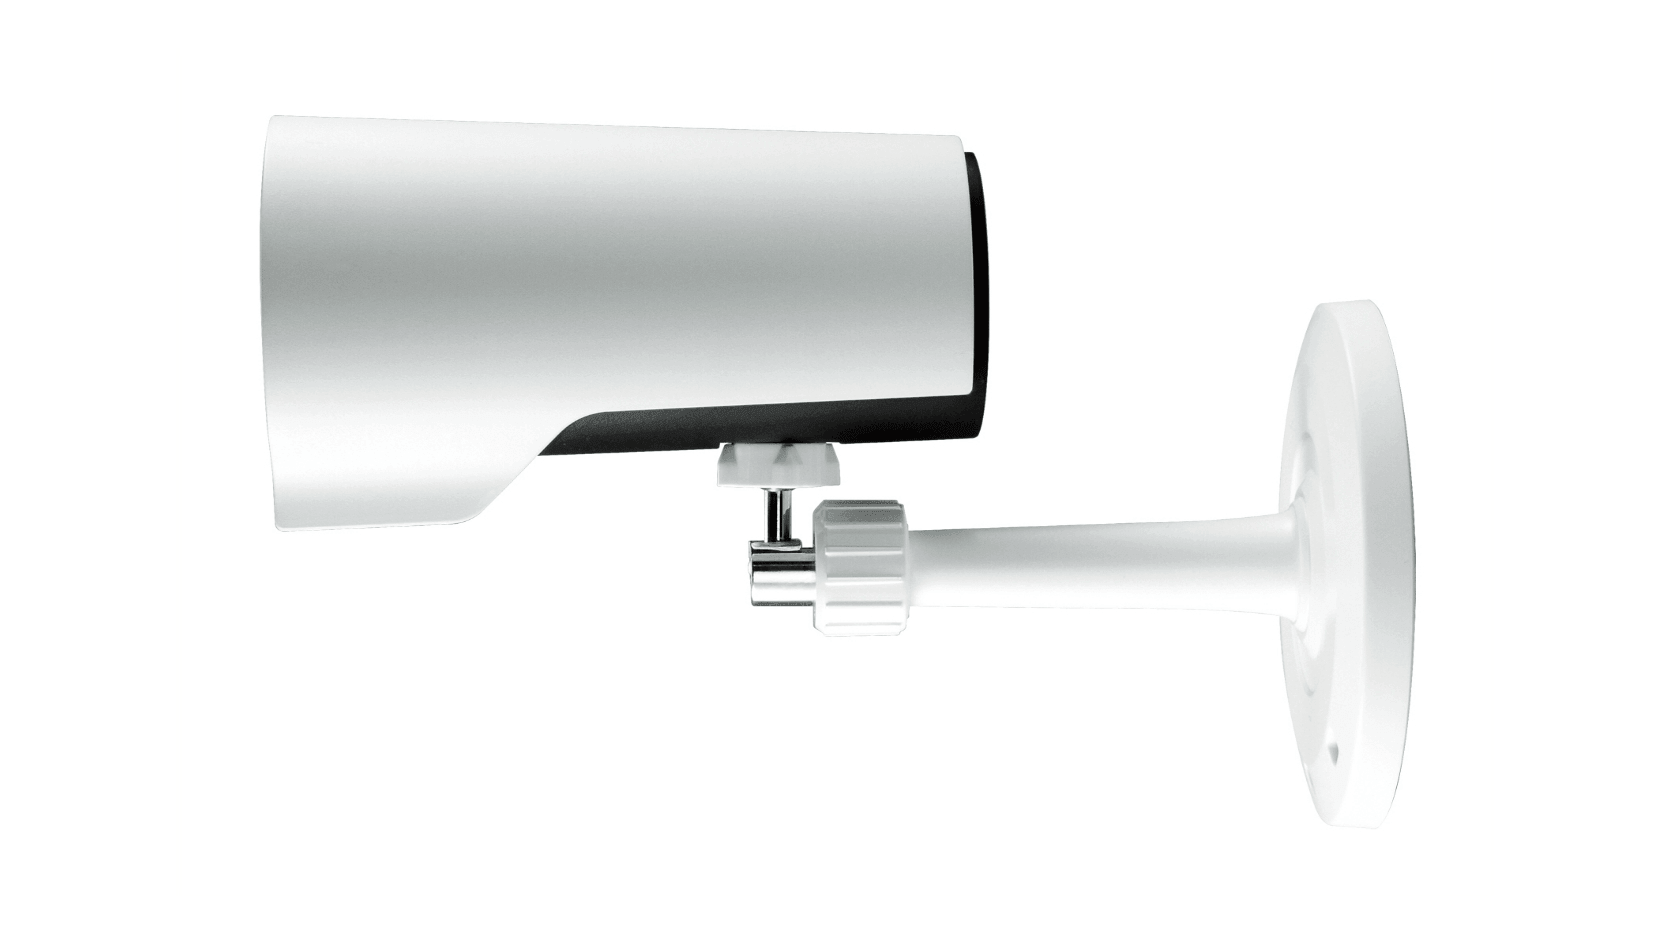 DLink DCS 7000L Side View 2